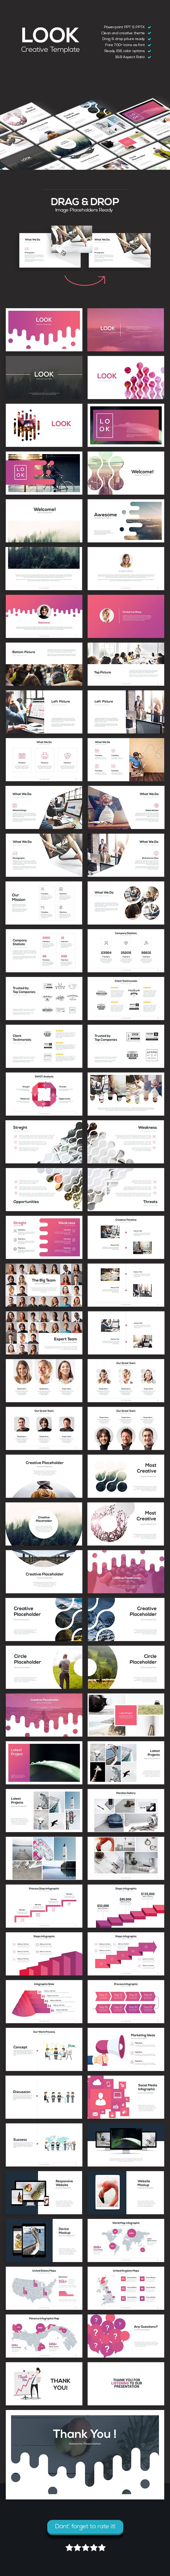 Look - Creative PowerPoint Template